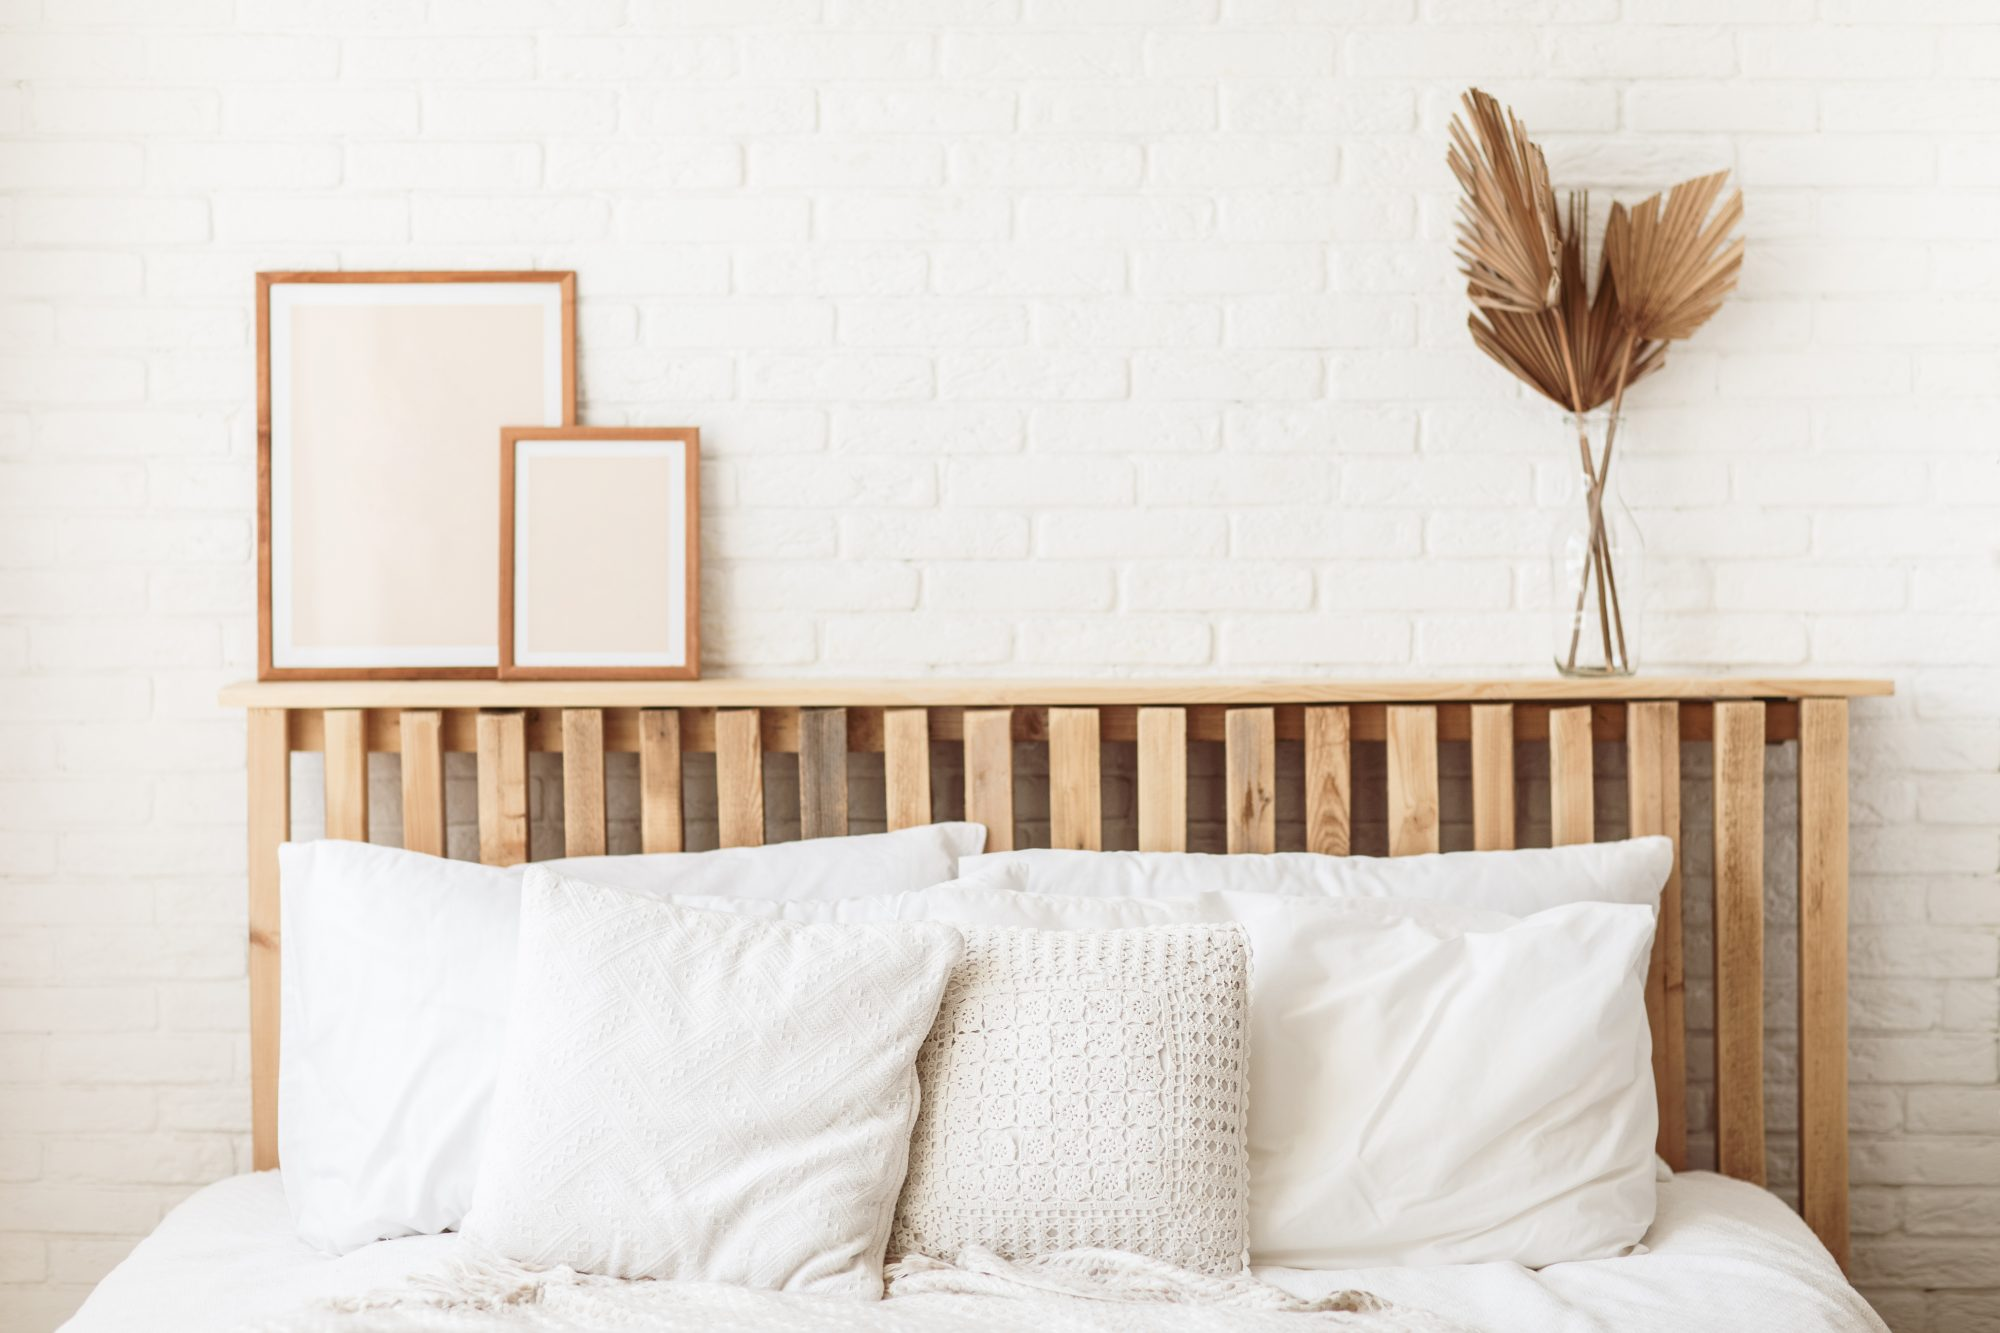 Wooden headboard with dry gold palm leaves in a glass vase